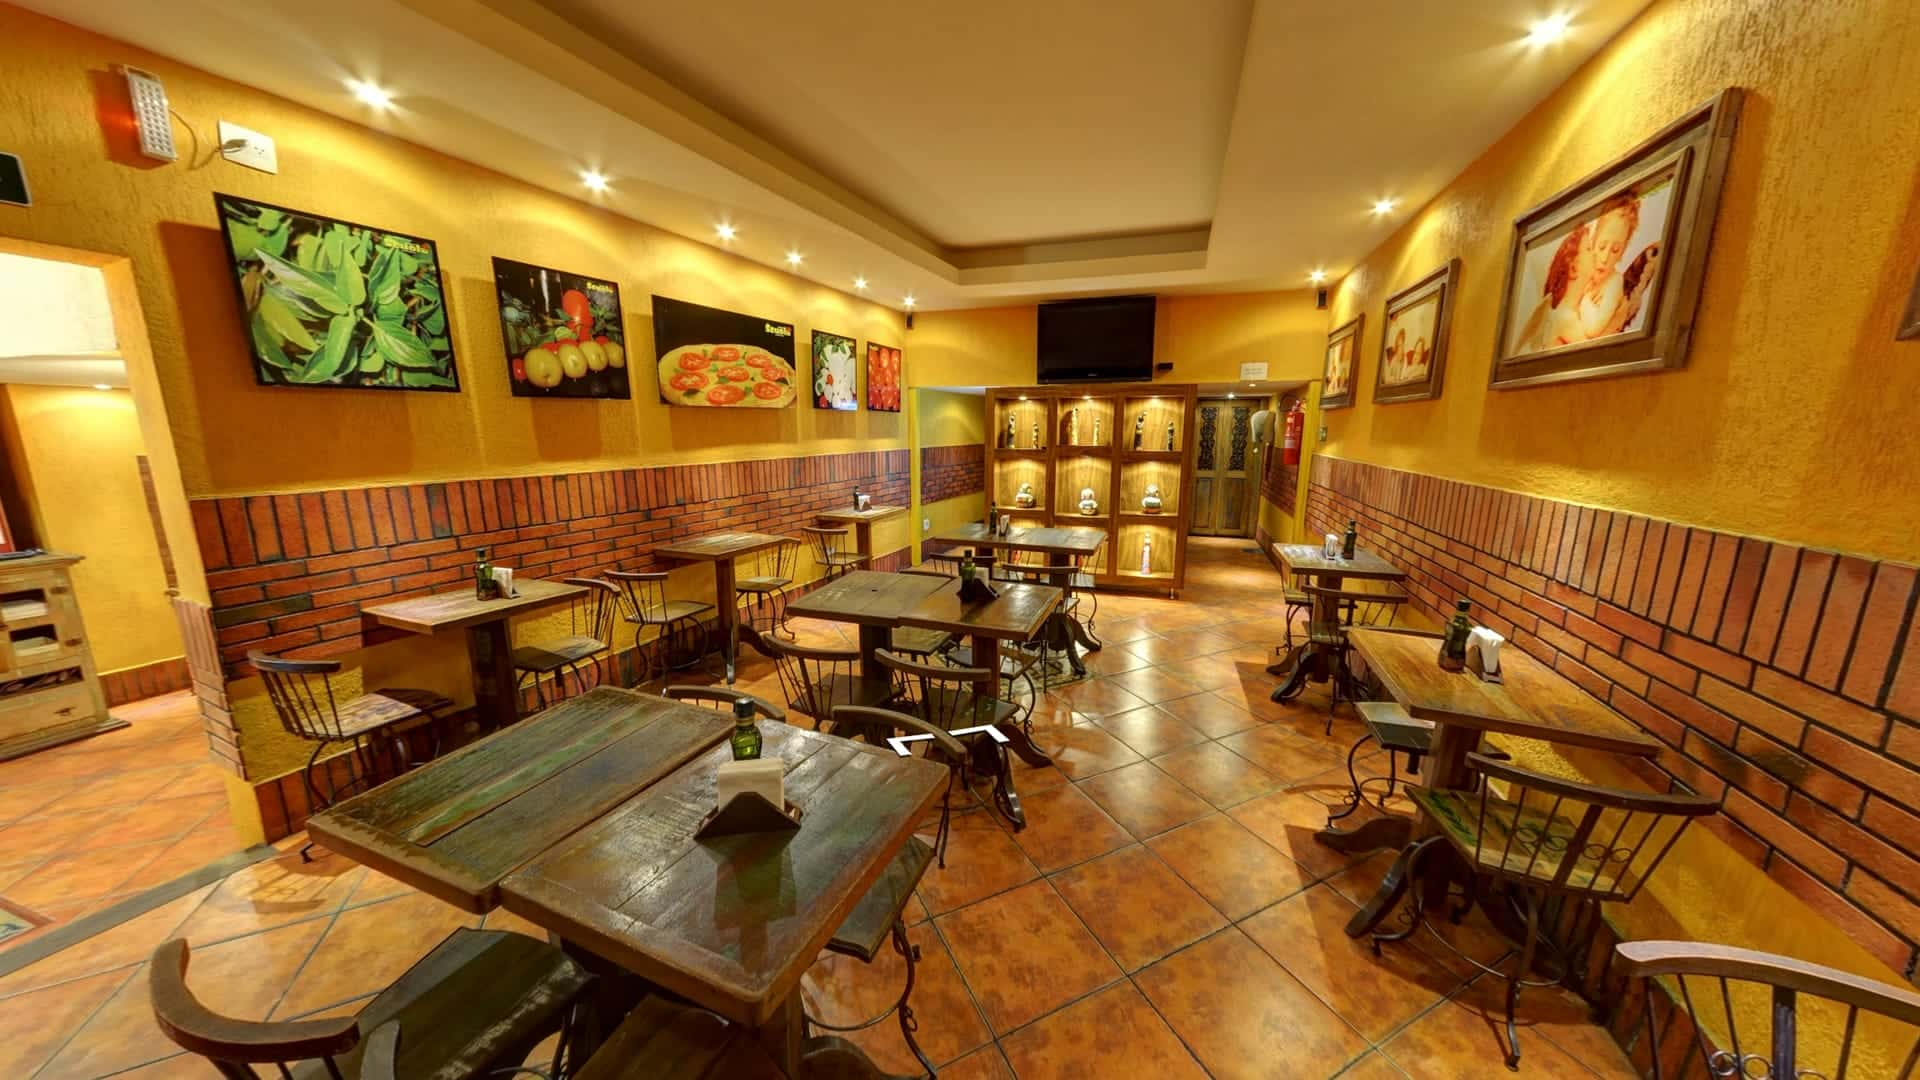 Pizza Scuola Sion - Street View Trusted de Pizzaria em Belo Horizonte